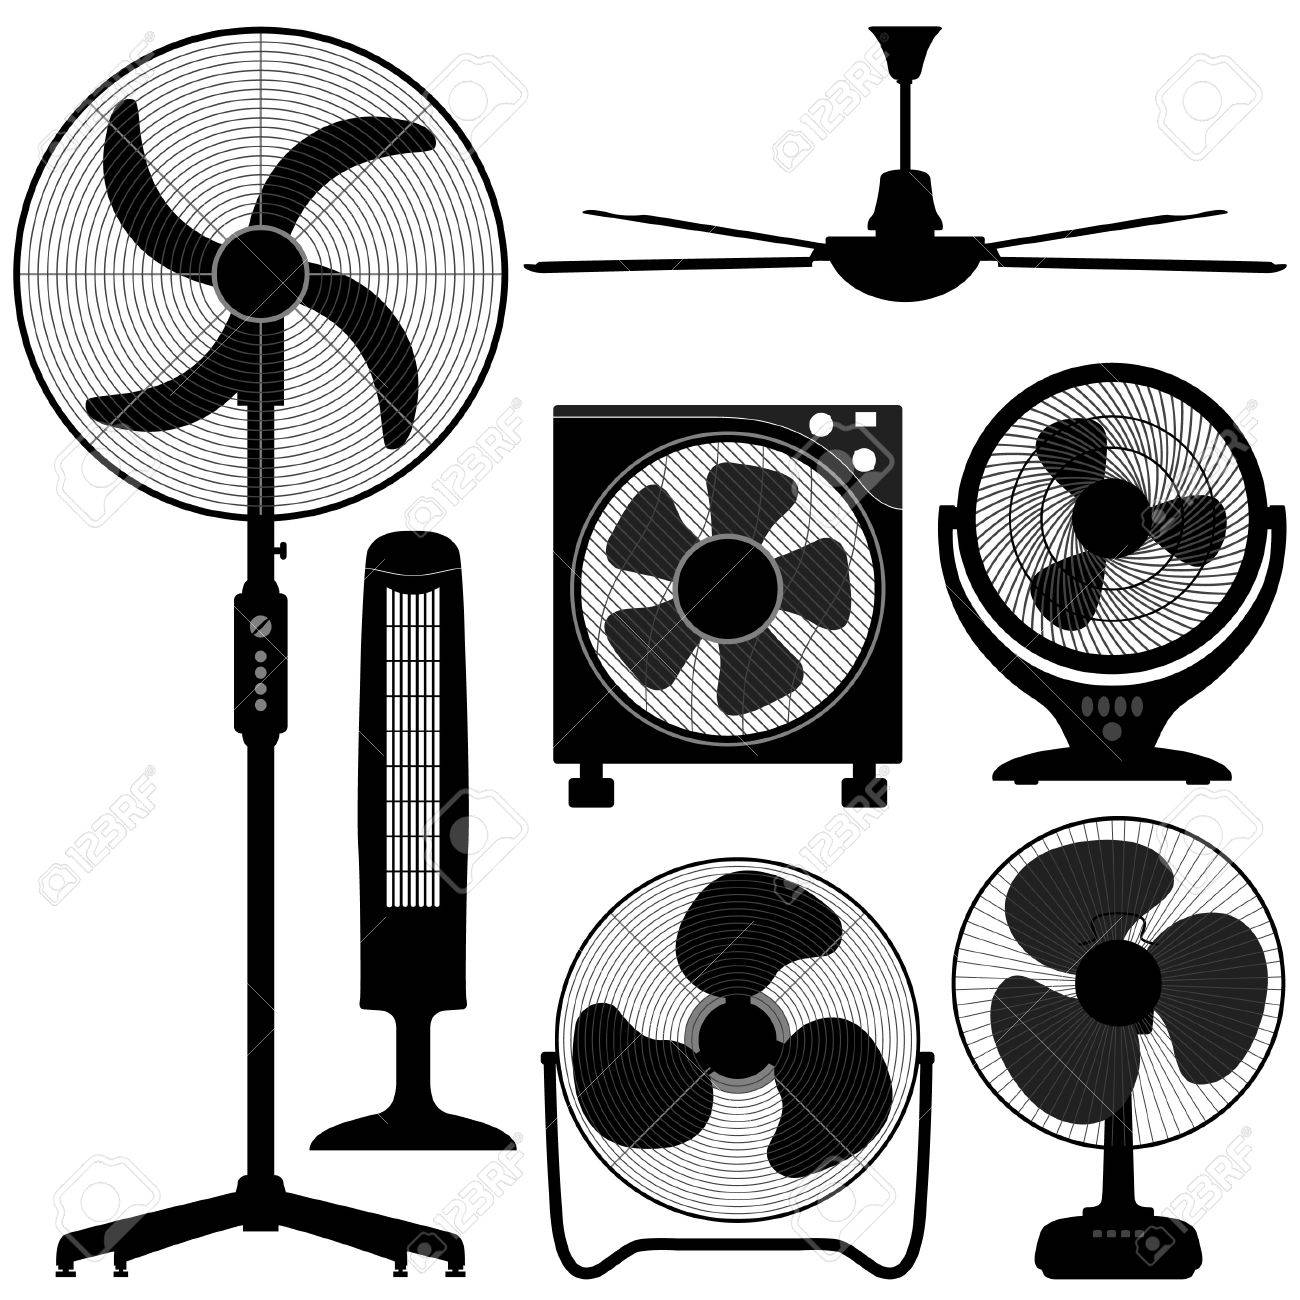 Standing Table Ceiling Fan Design Stock Vector - 18809685